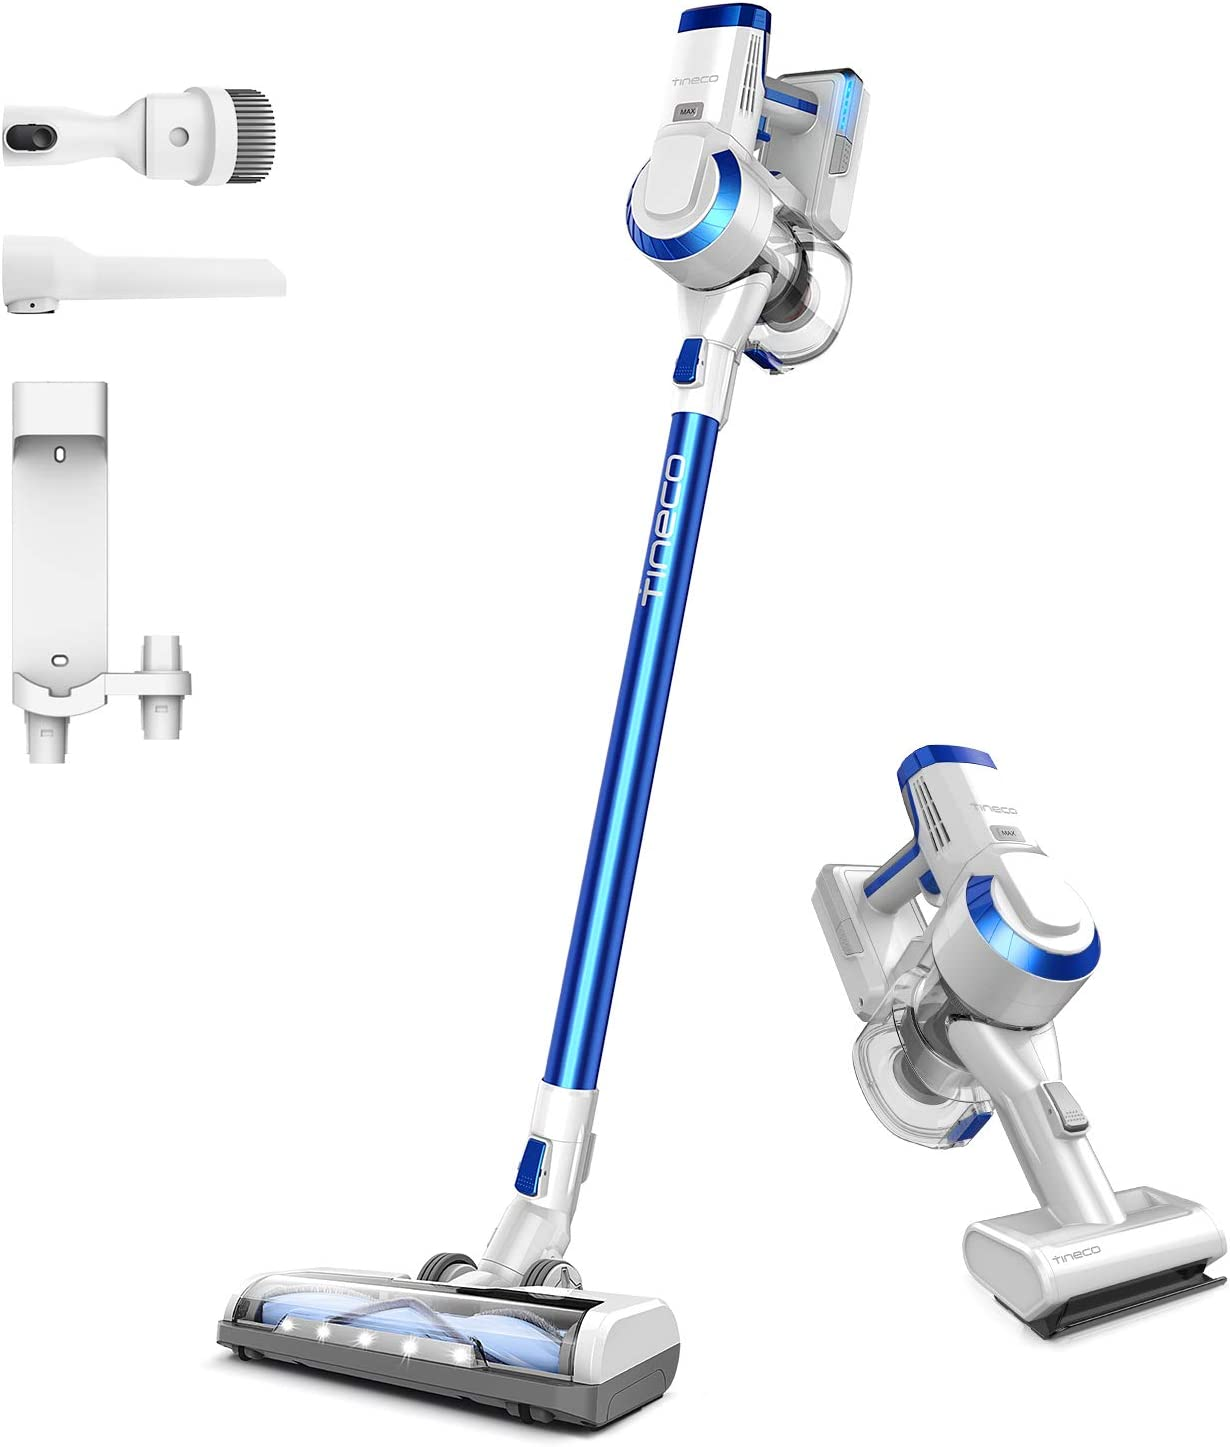 Tineco A10 Hero (Wall Mount) Cordless Stick Vacuum Cleaner, Powerful Suction, Multi-Surface Cleaning, Great for Pet Hair, Space Blue